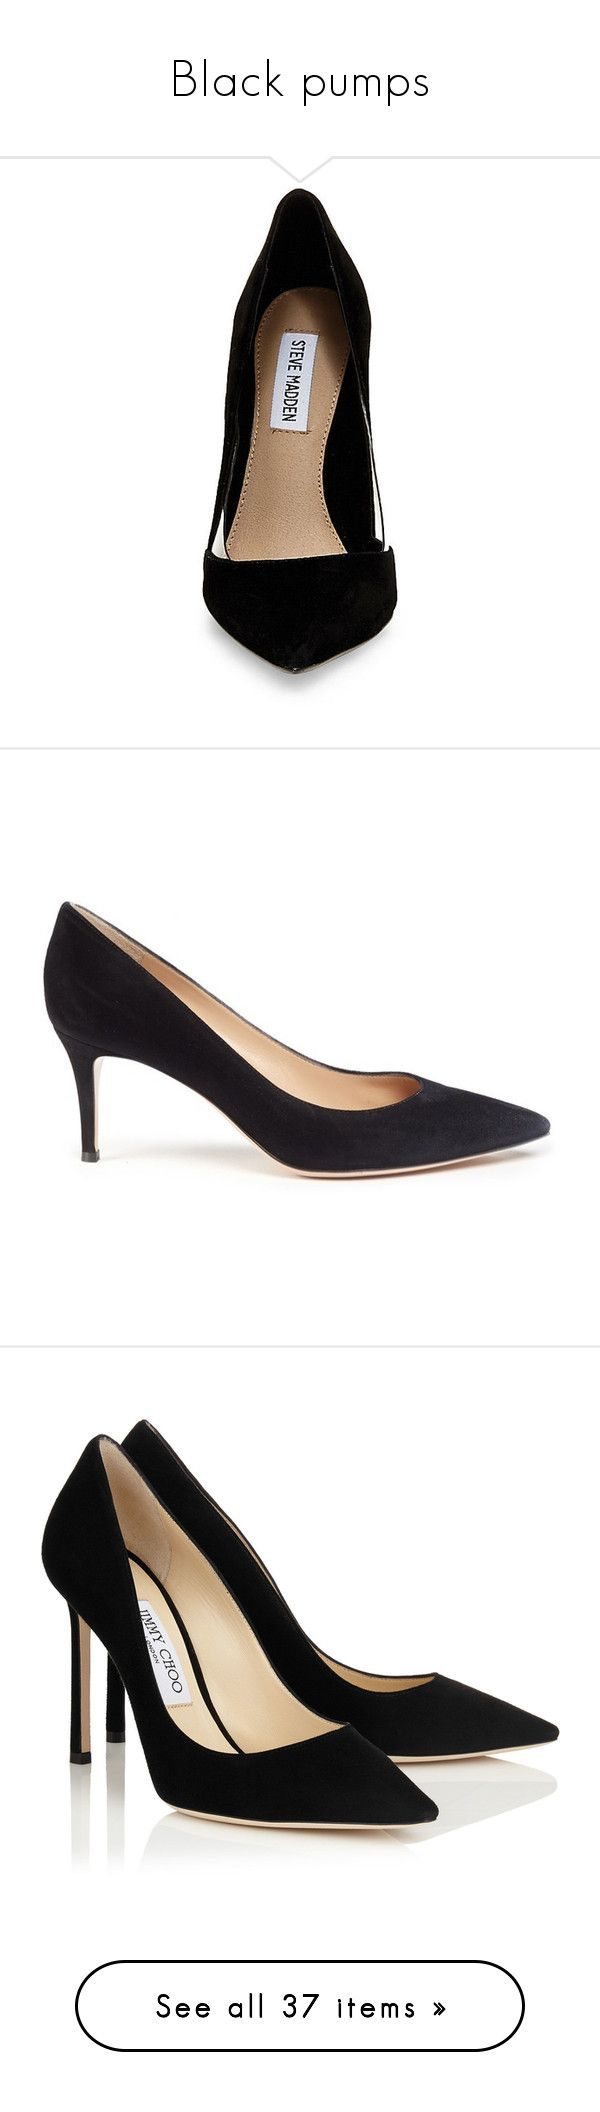 """""""Black pumps"""" by dresslikearoyal ❤ liked on Polyvore featuring shoes, pumps, heels, zapatos, sexy shoes, clear shoes, clear heel shoes, steve madden, clear heel pumps and black"""